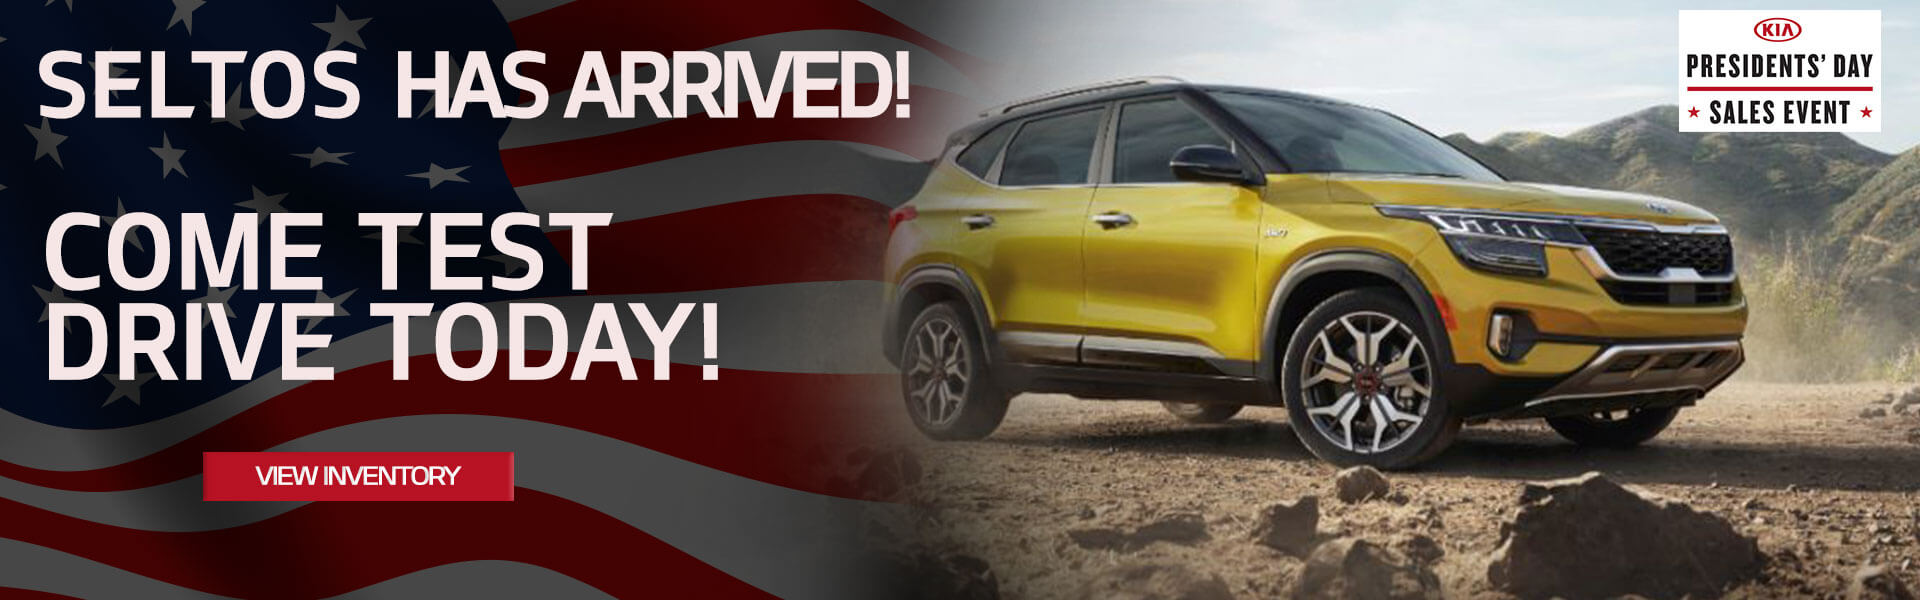 Seltos has arrived! Come test drive today!